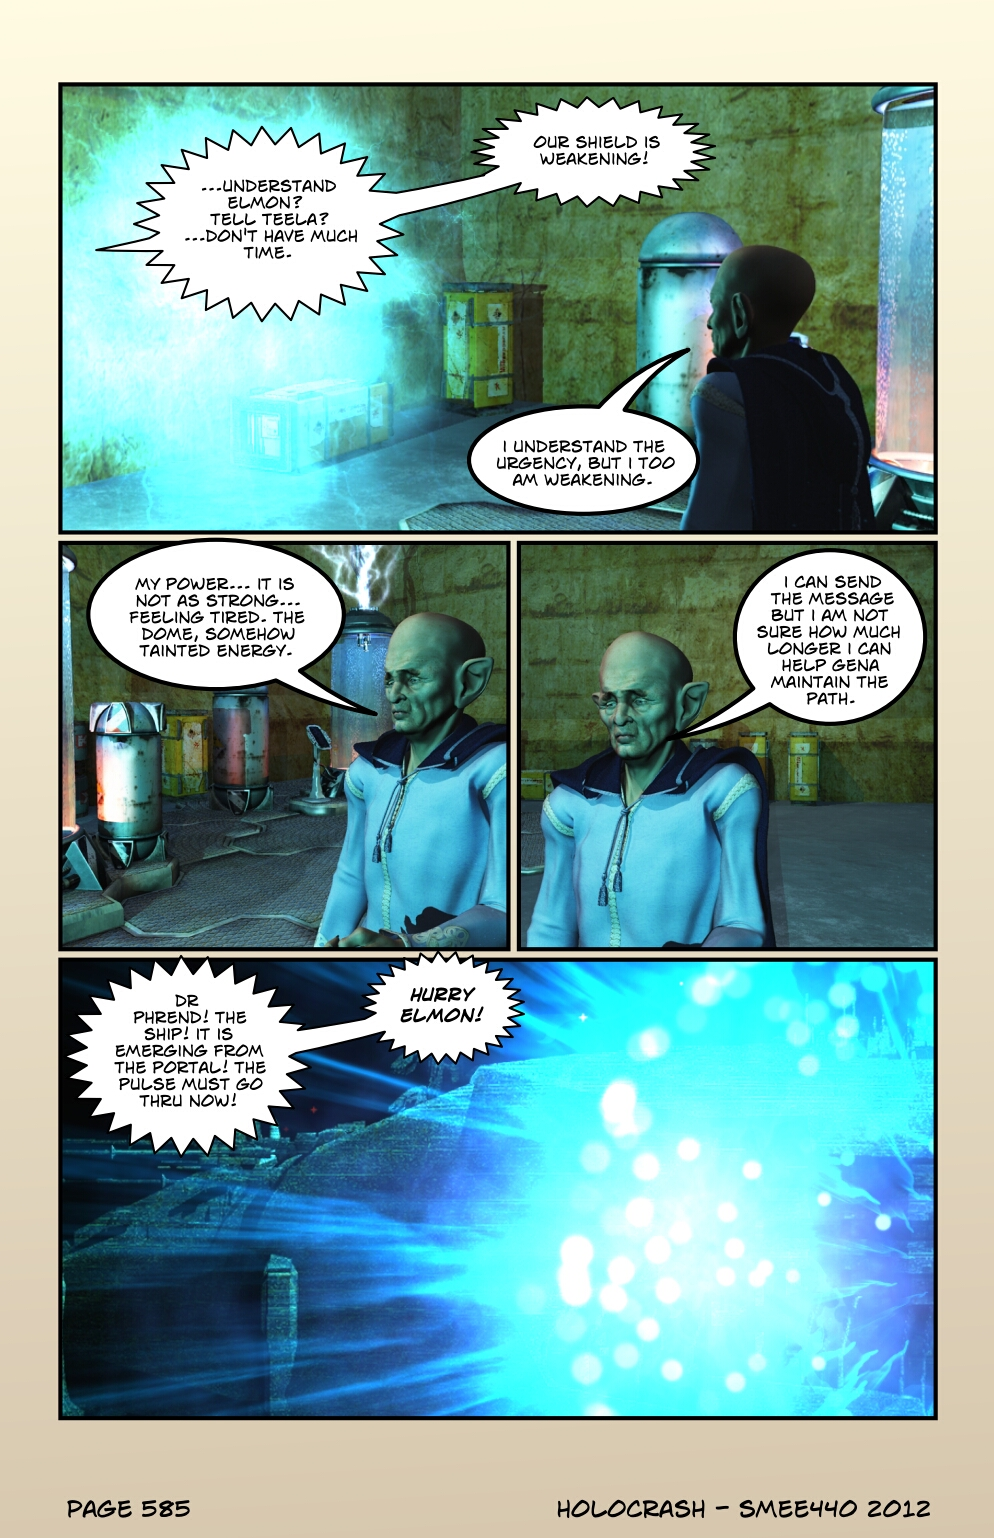 Holocrash - Chapter 12 - Page 0585